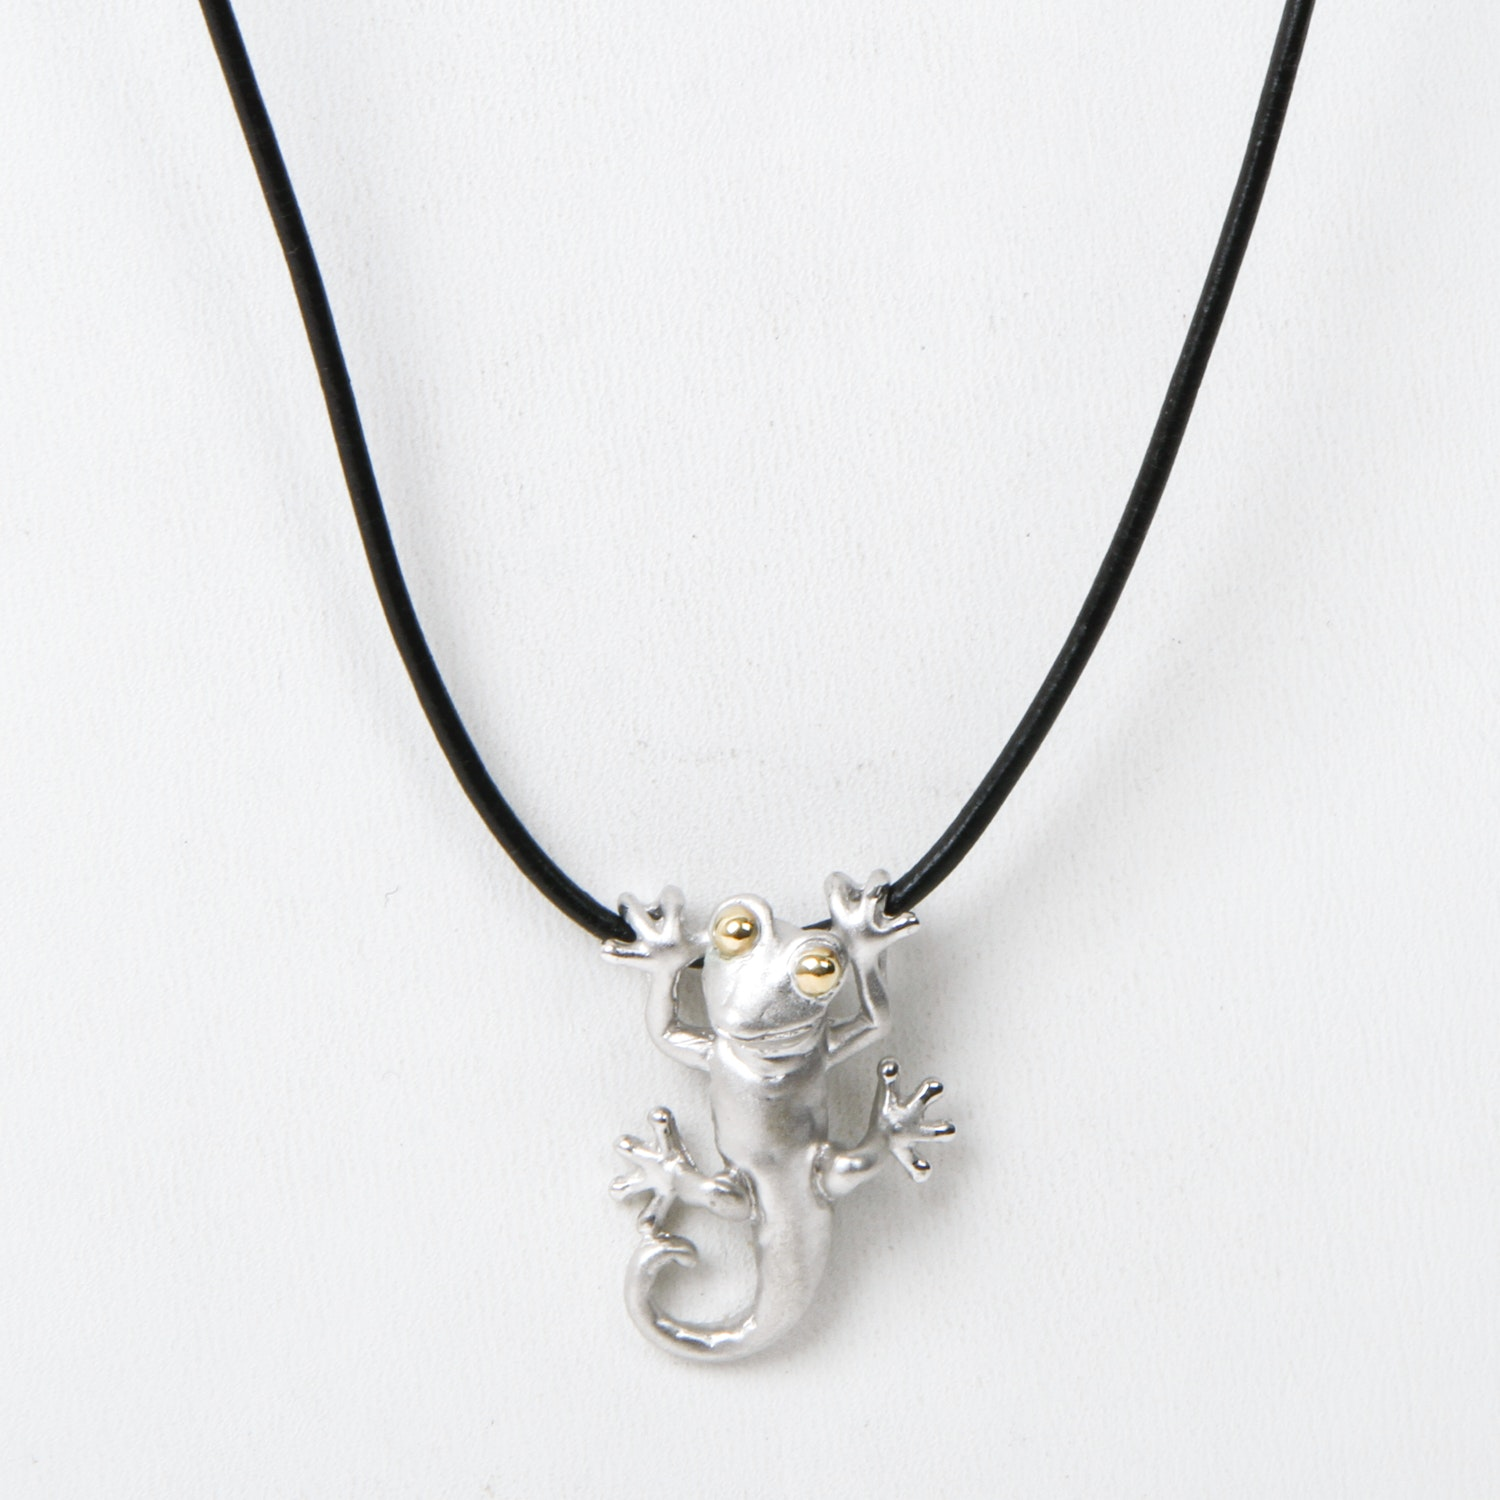 Sterling Silver and 14K Yellow Gold Gecko Pendant with Black Leather Chain